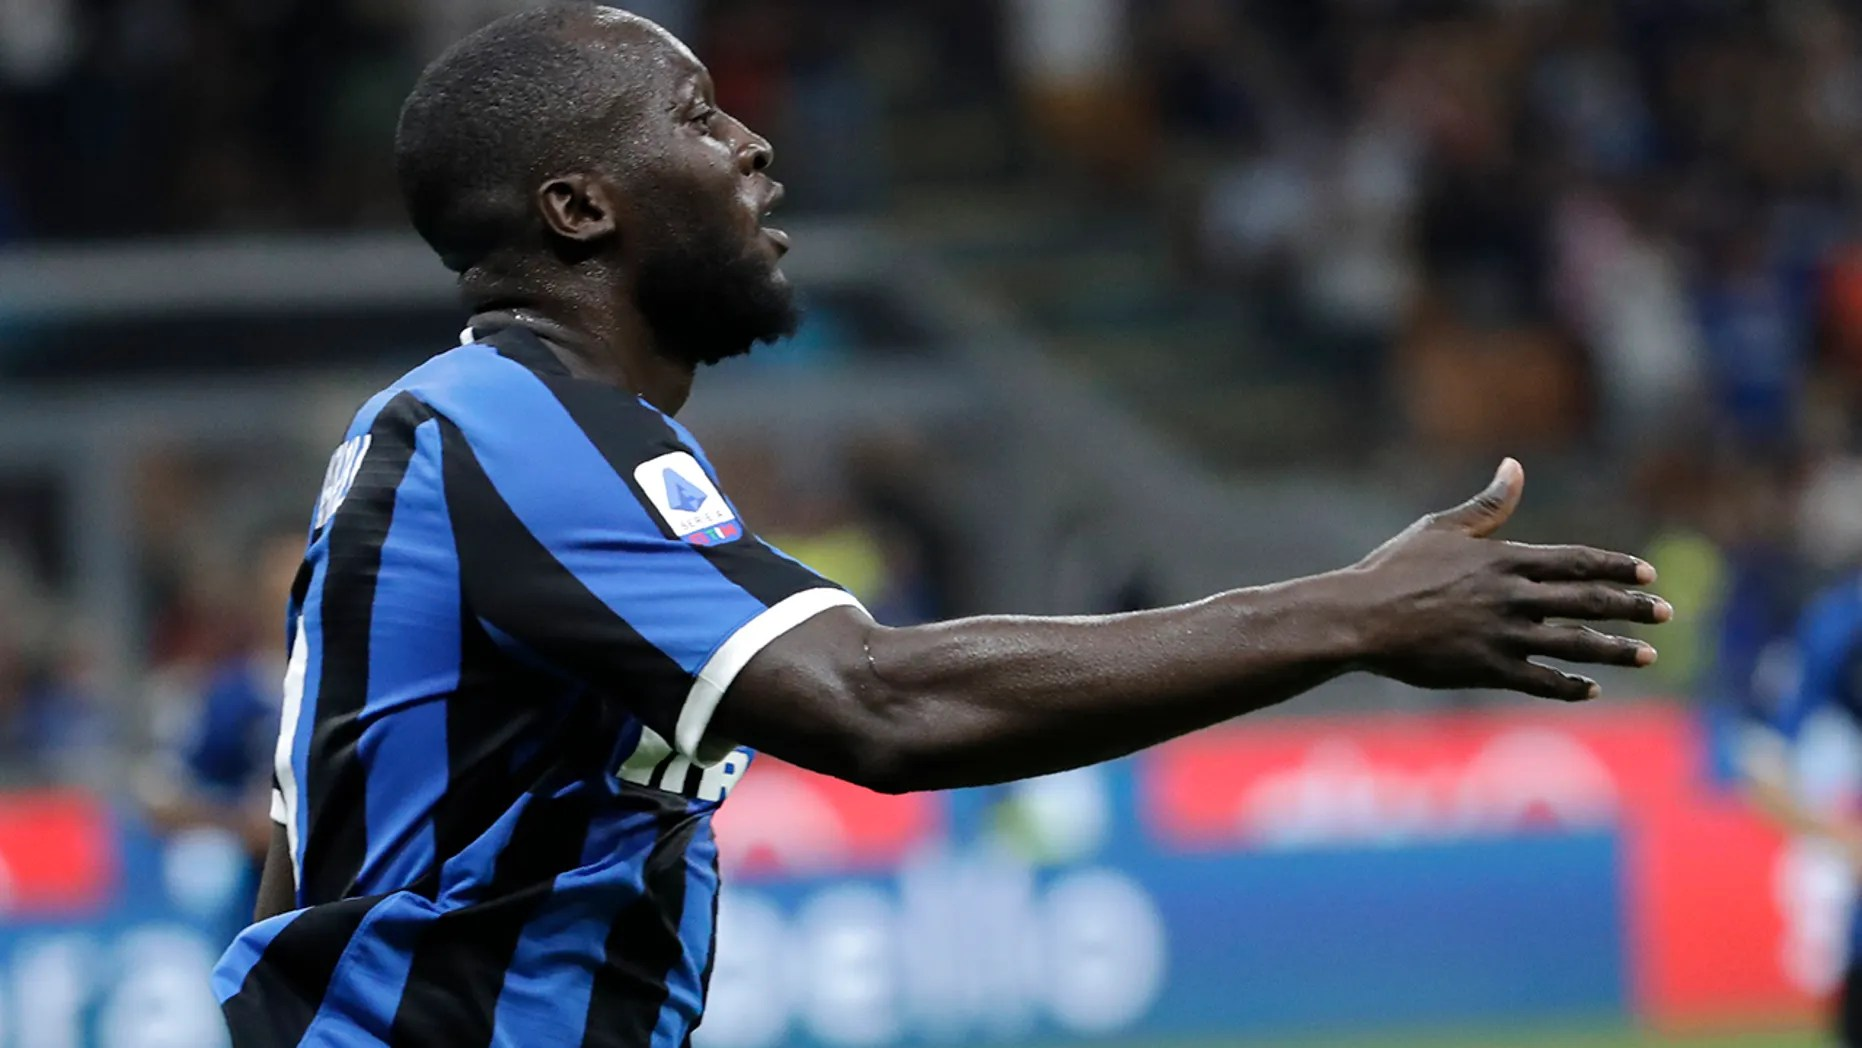 Serie A Judge More Evidence Needed To Rule On Racist